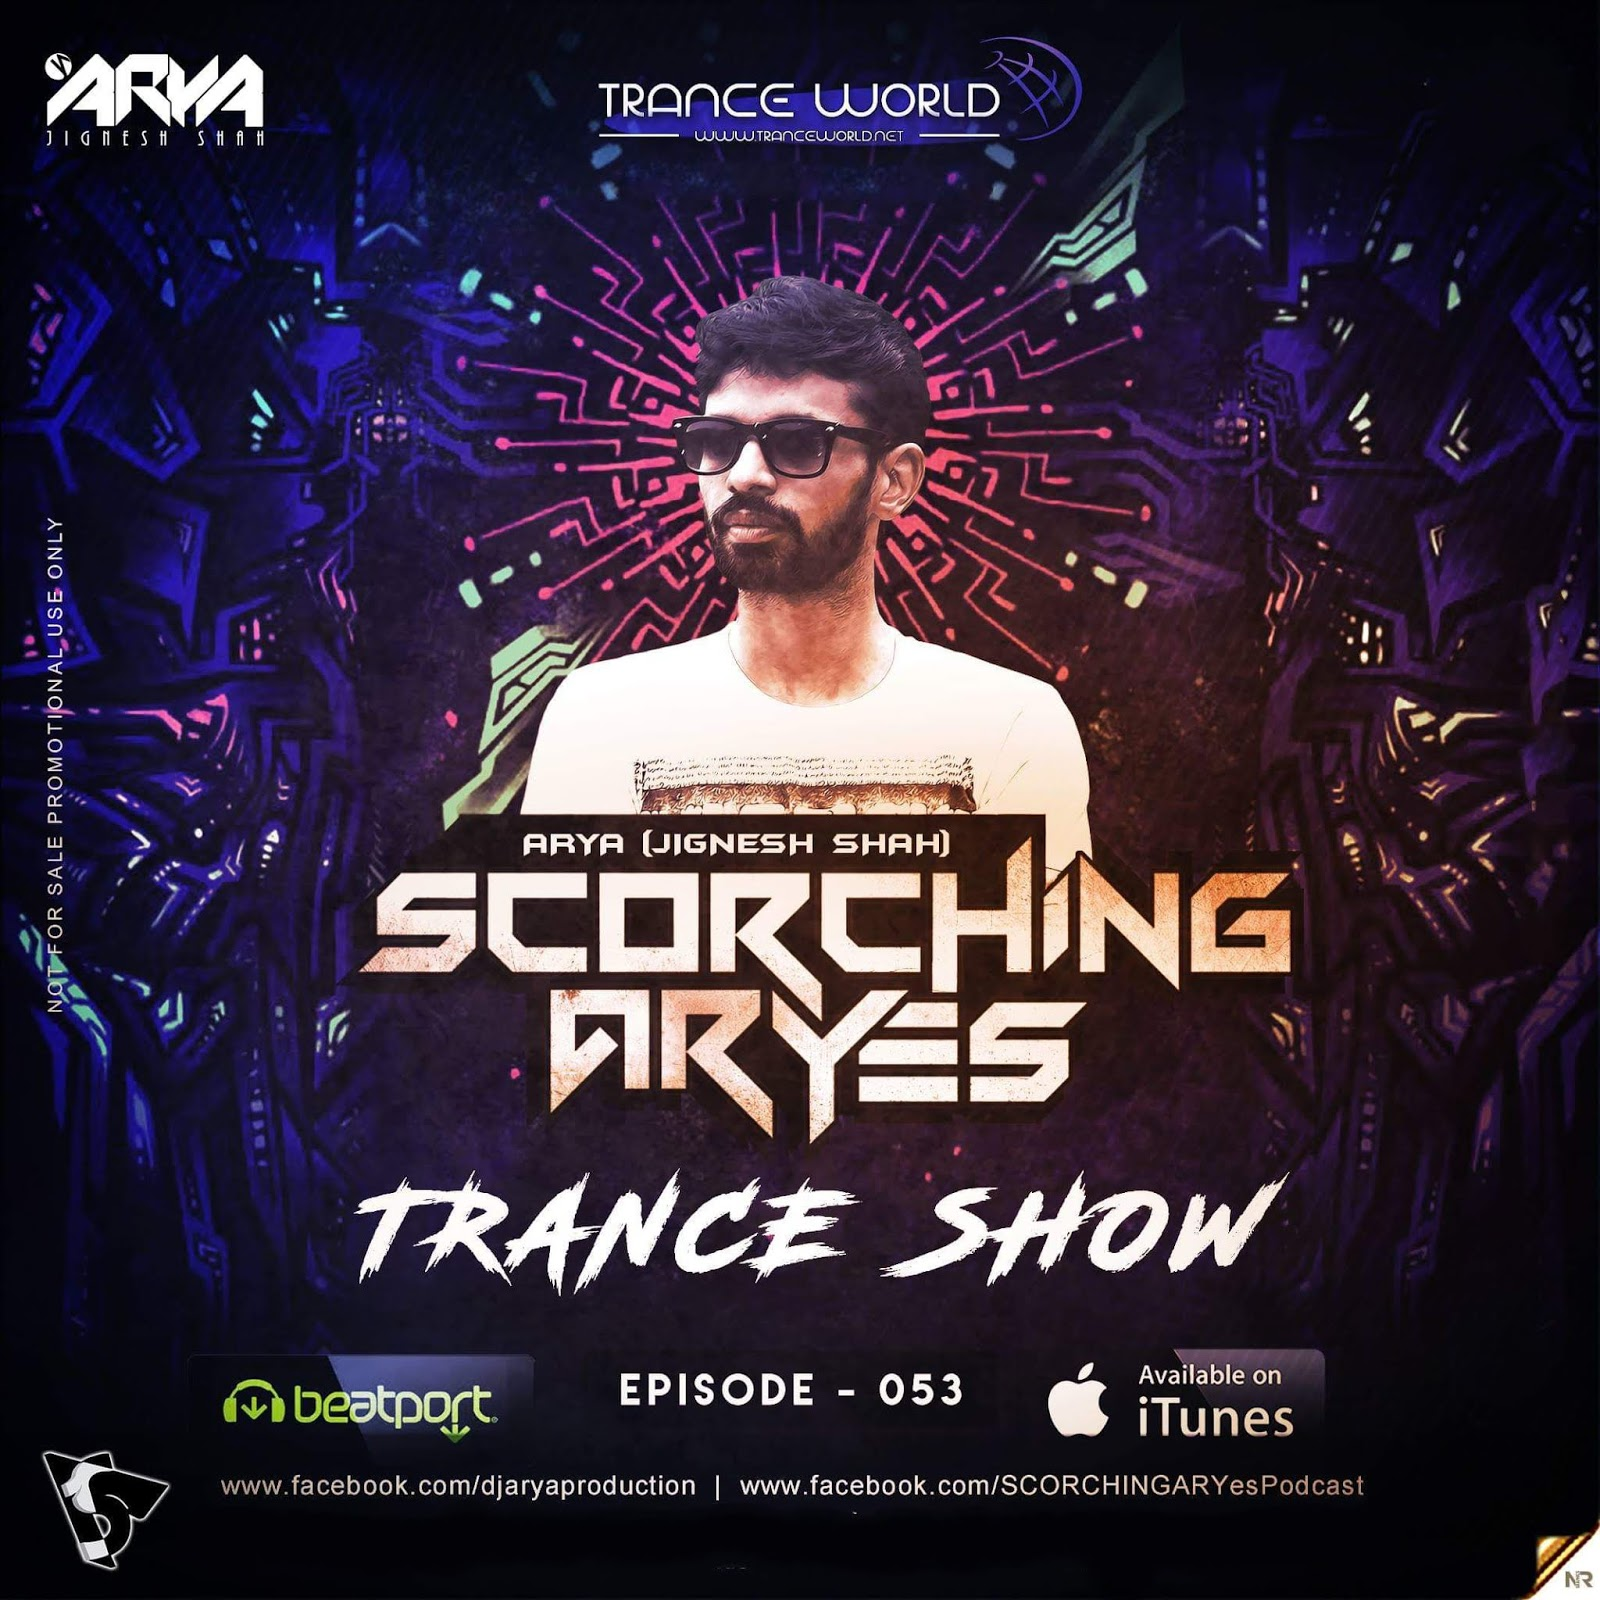 SCORCHING ARYes Episode 053 - ARYA (Jignesh Shah)